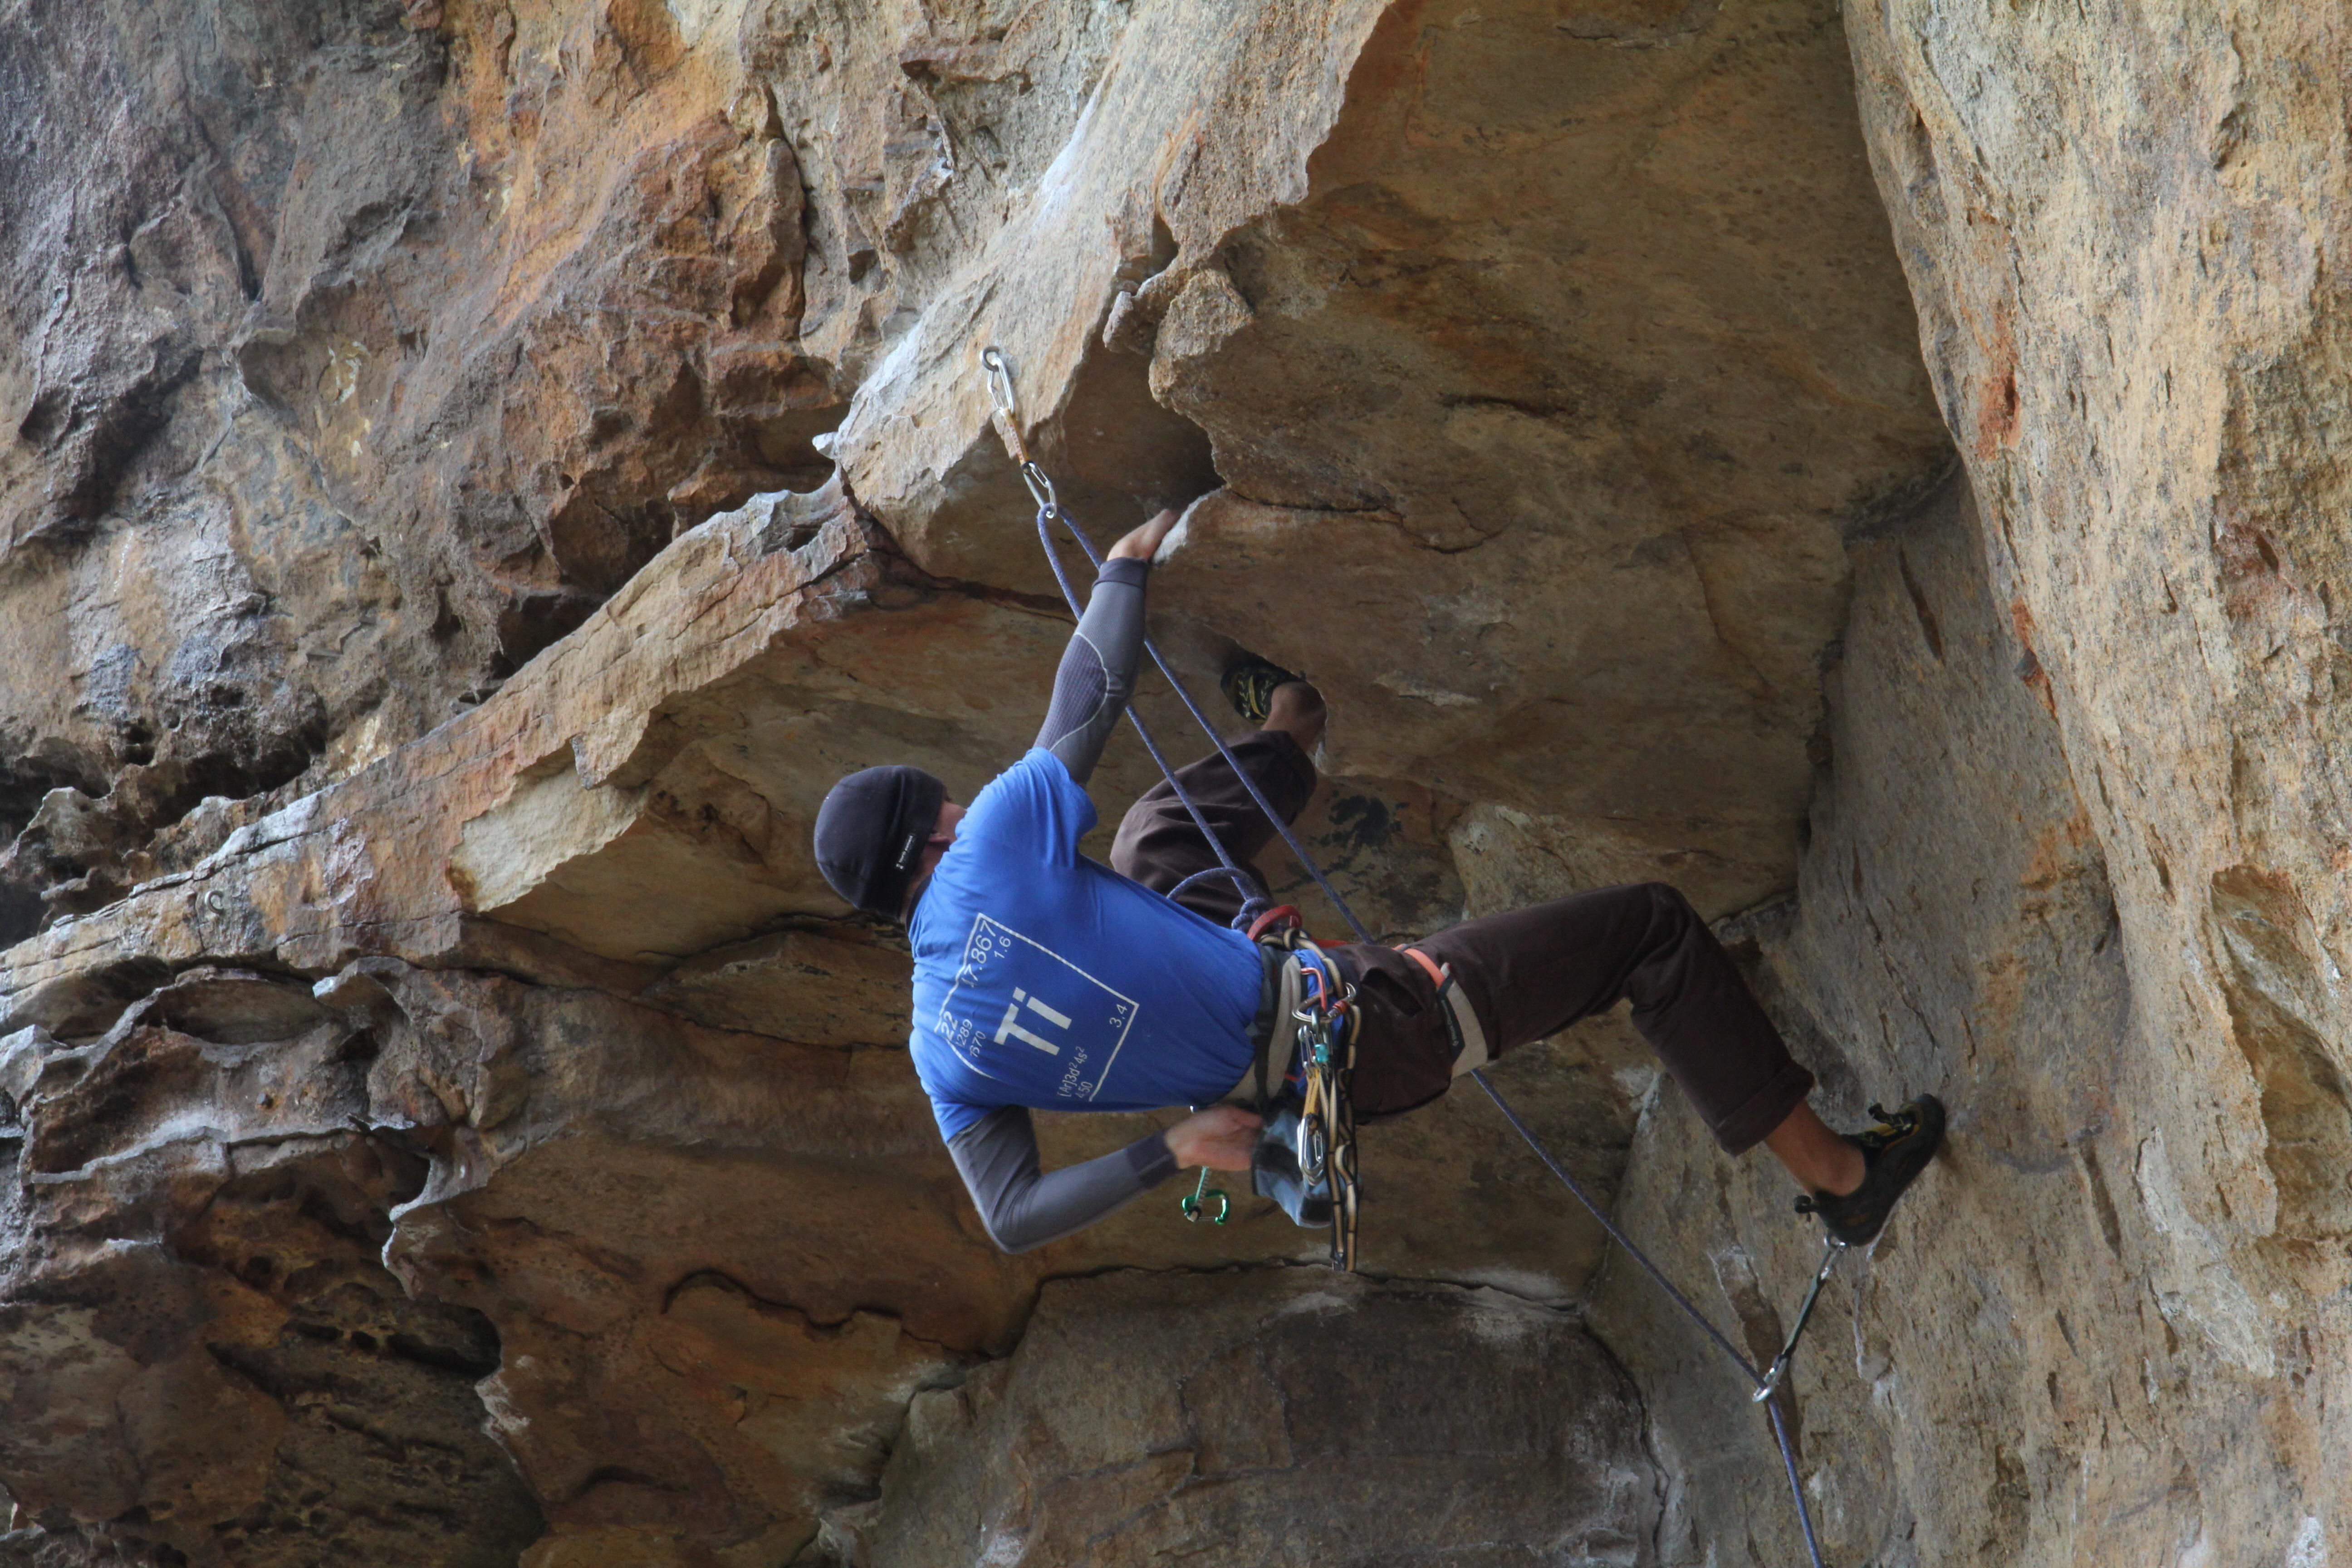 Person with periodic table shirt on while rock climbing.